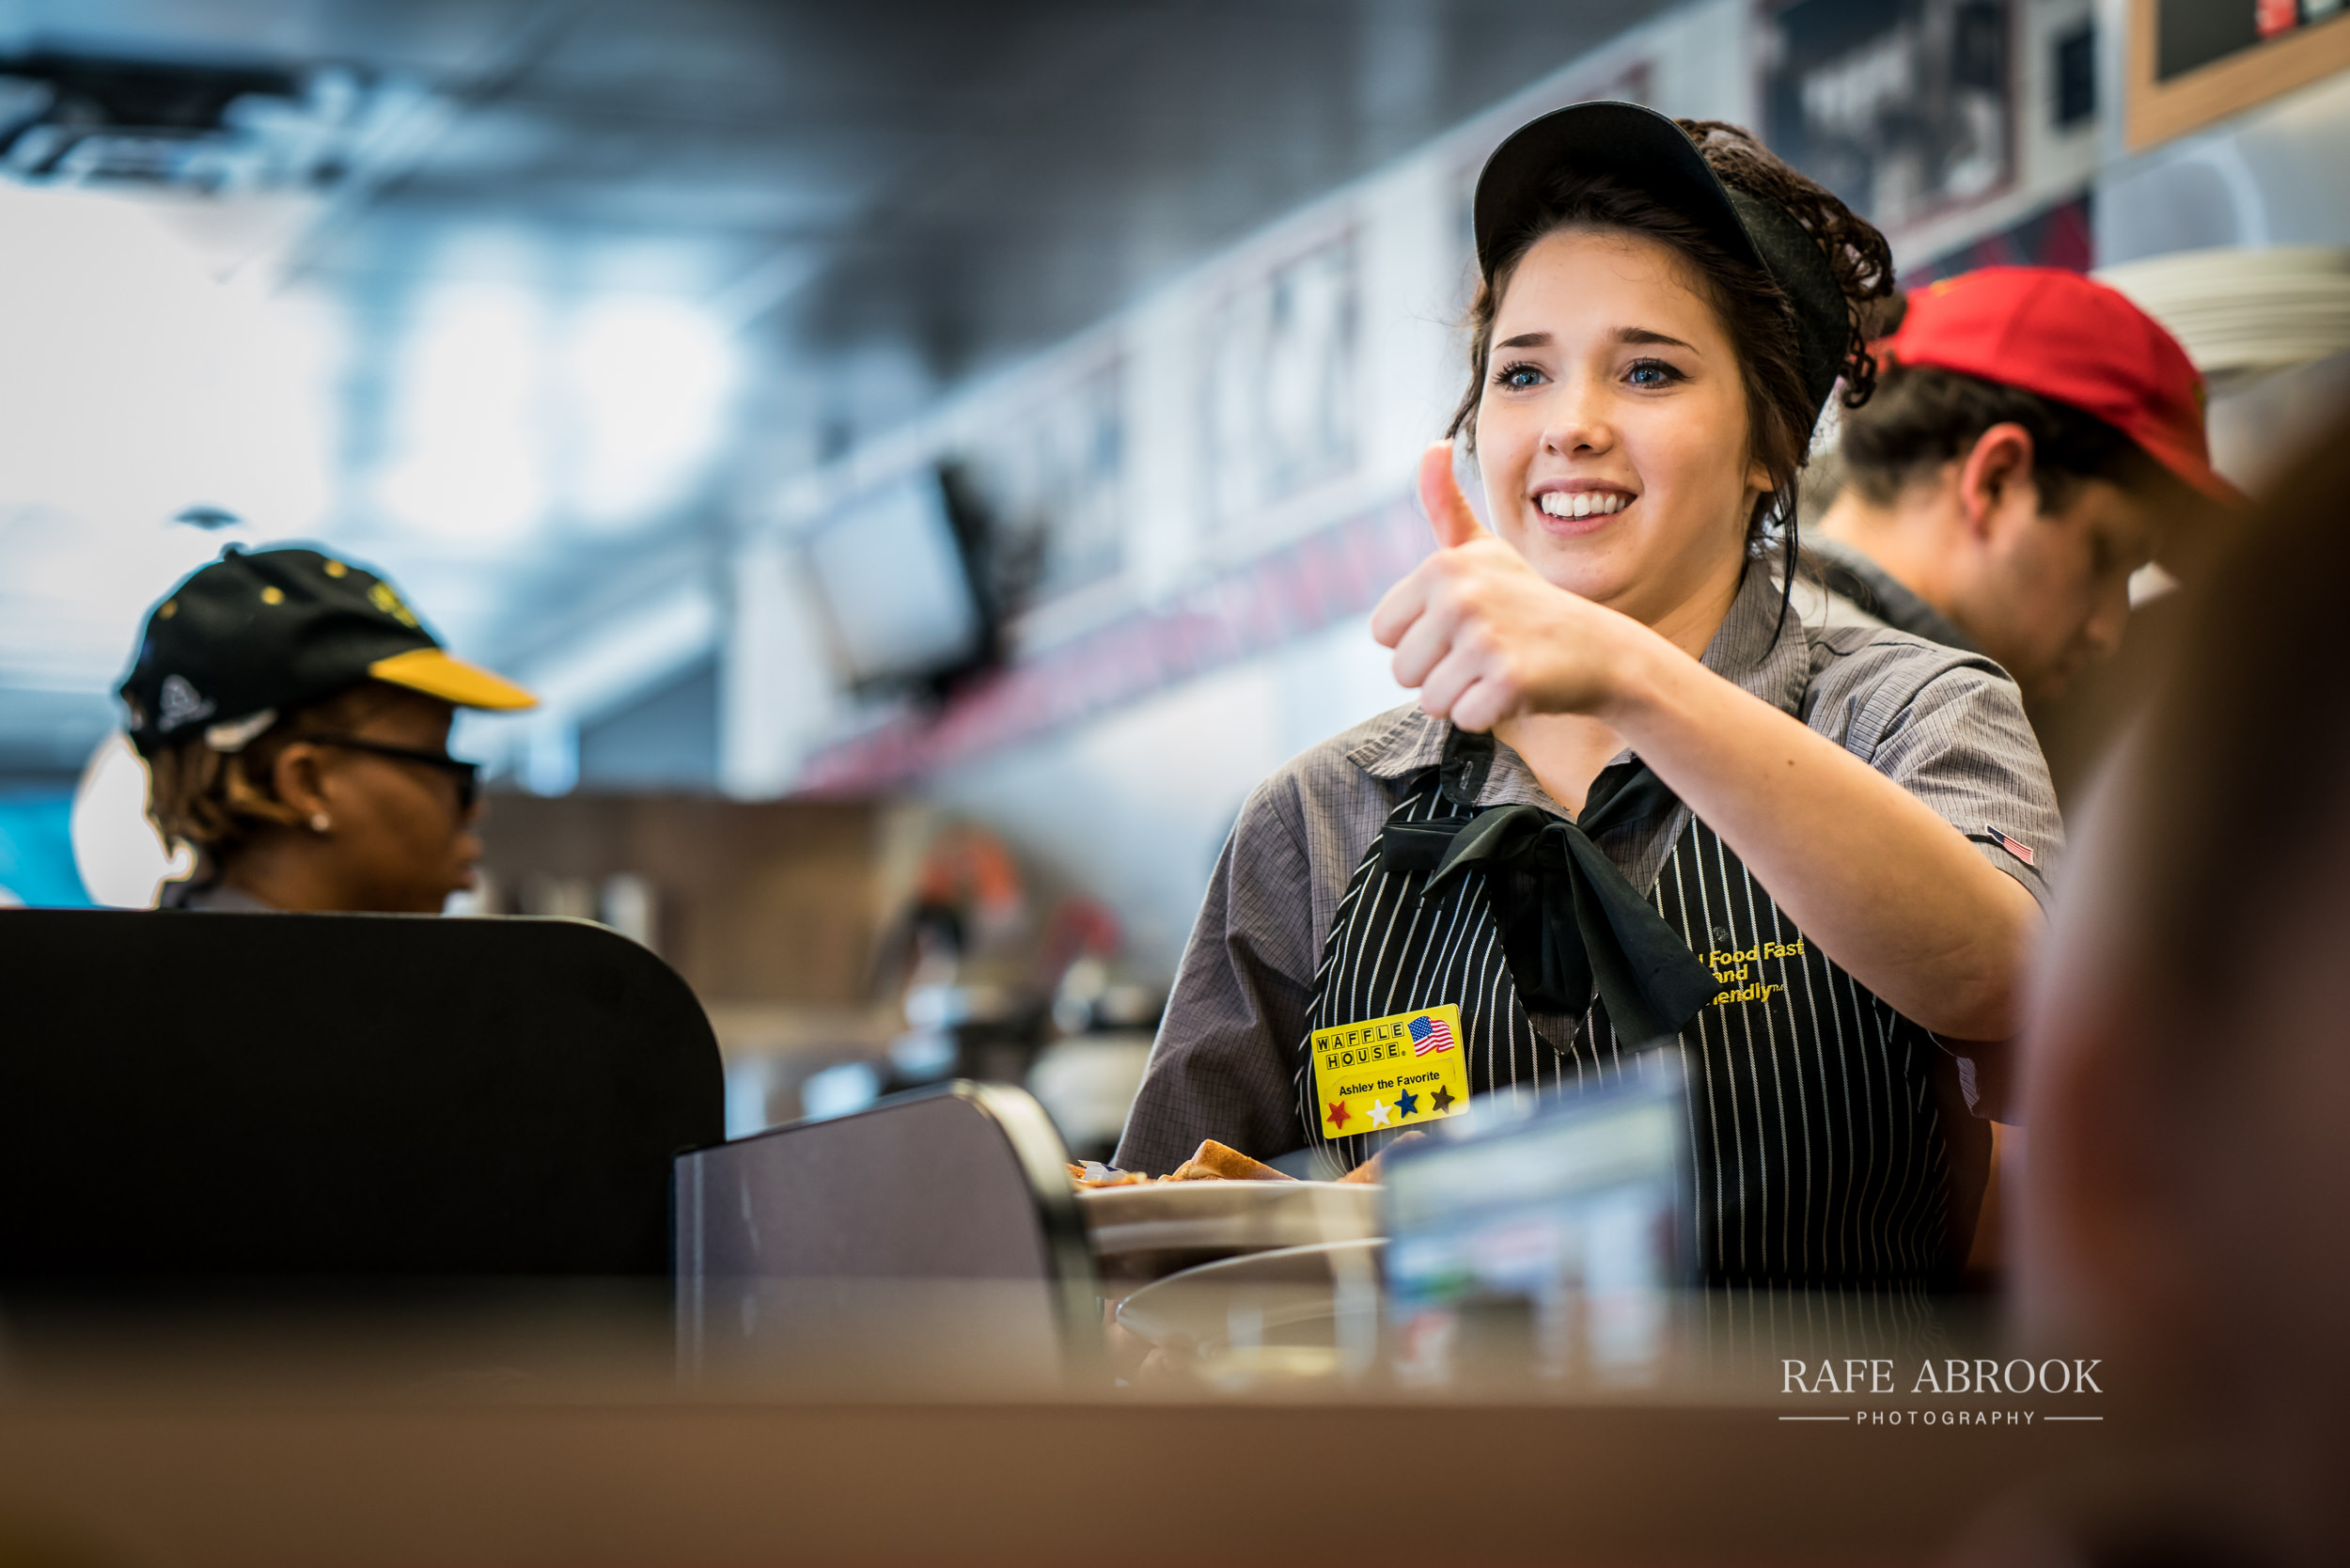 Service with an American style at The Waffle House. Presumably that customer she is signalling to didn't order the grits.